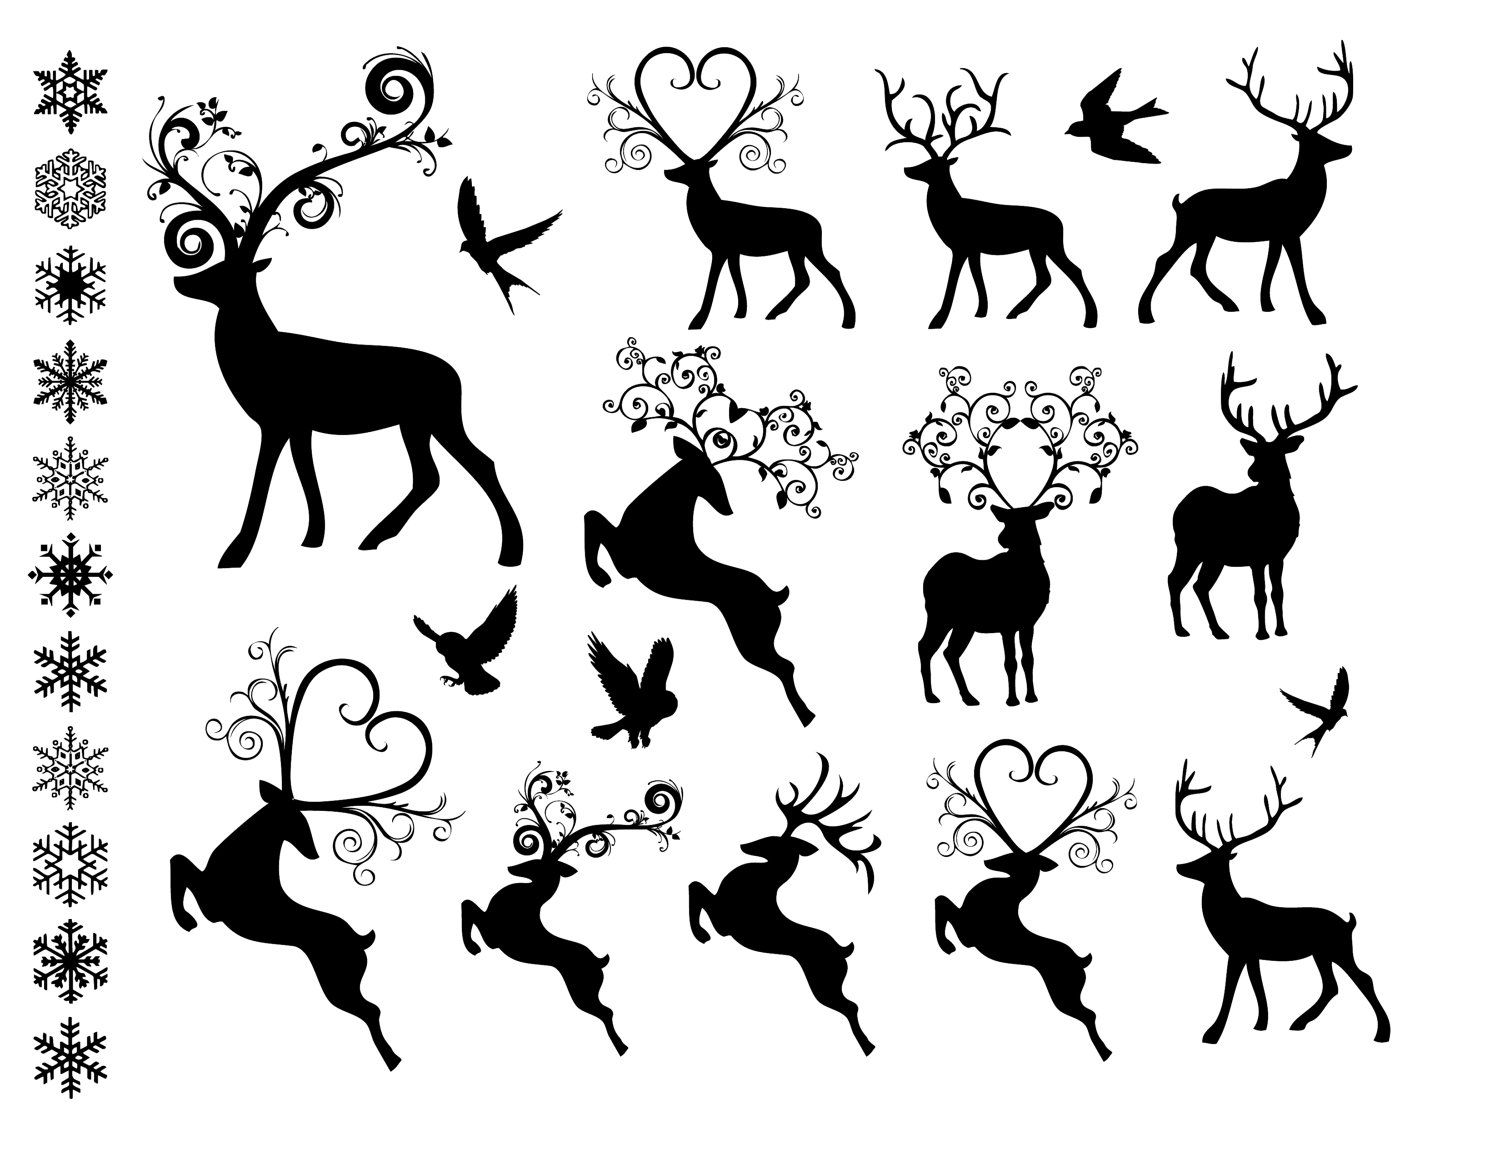 Christmas ornament  black and white christmas ornament clipart black and white merry 4